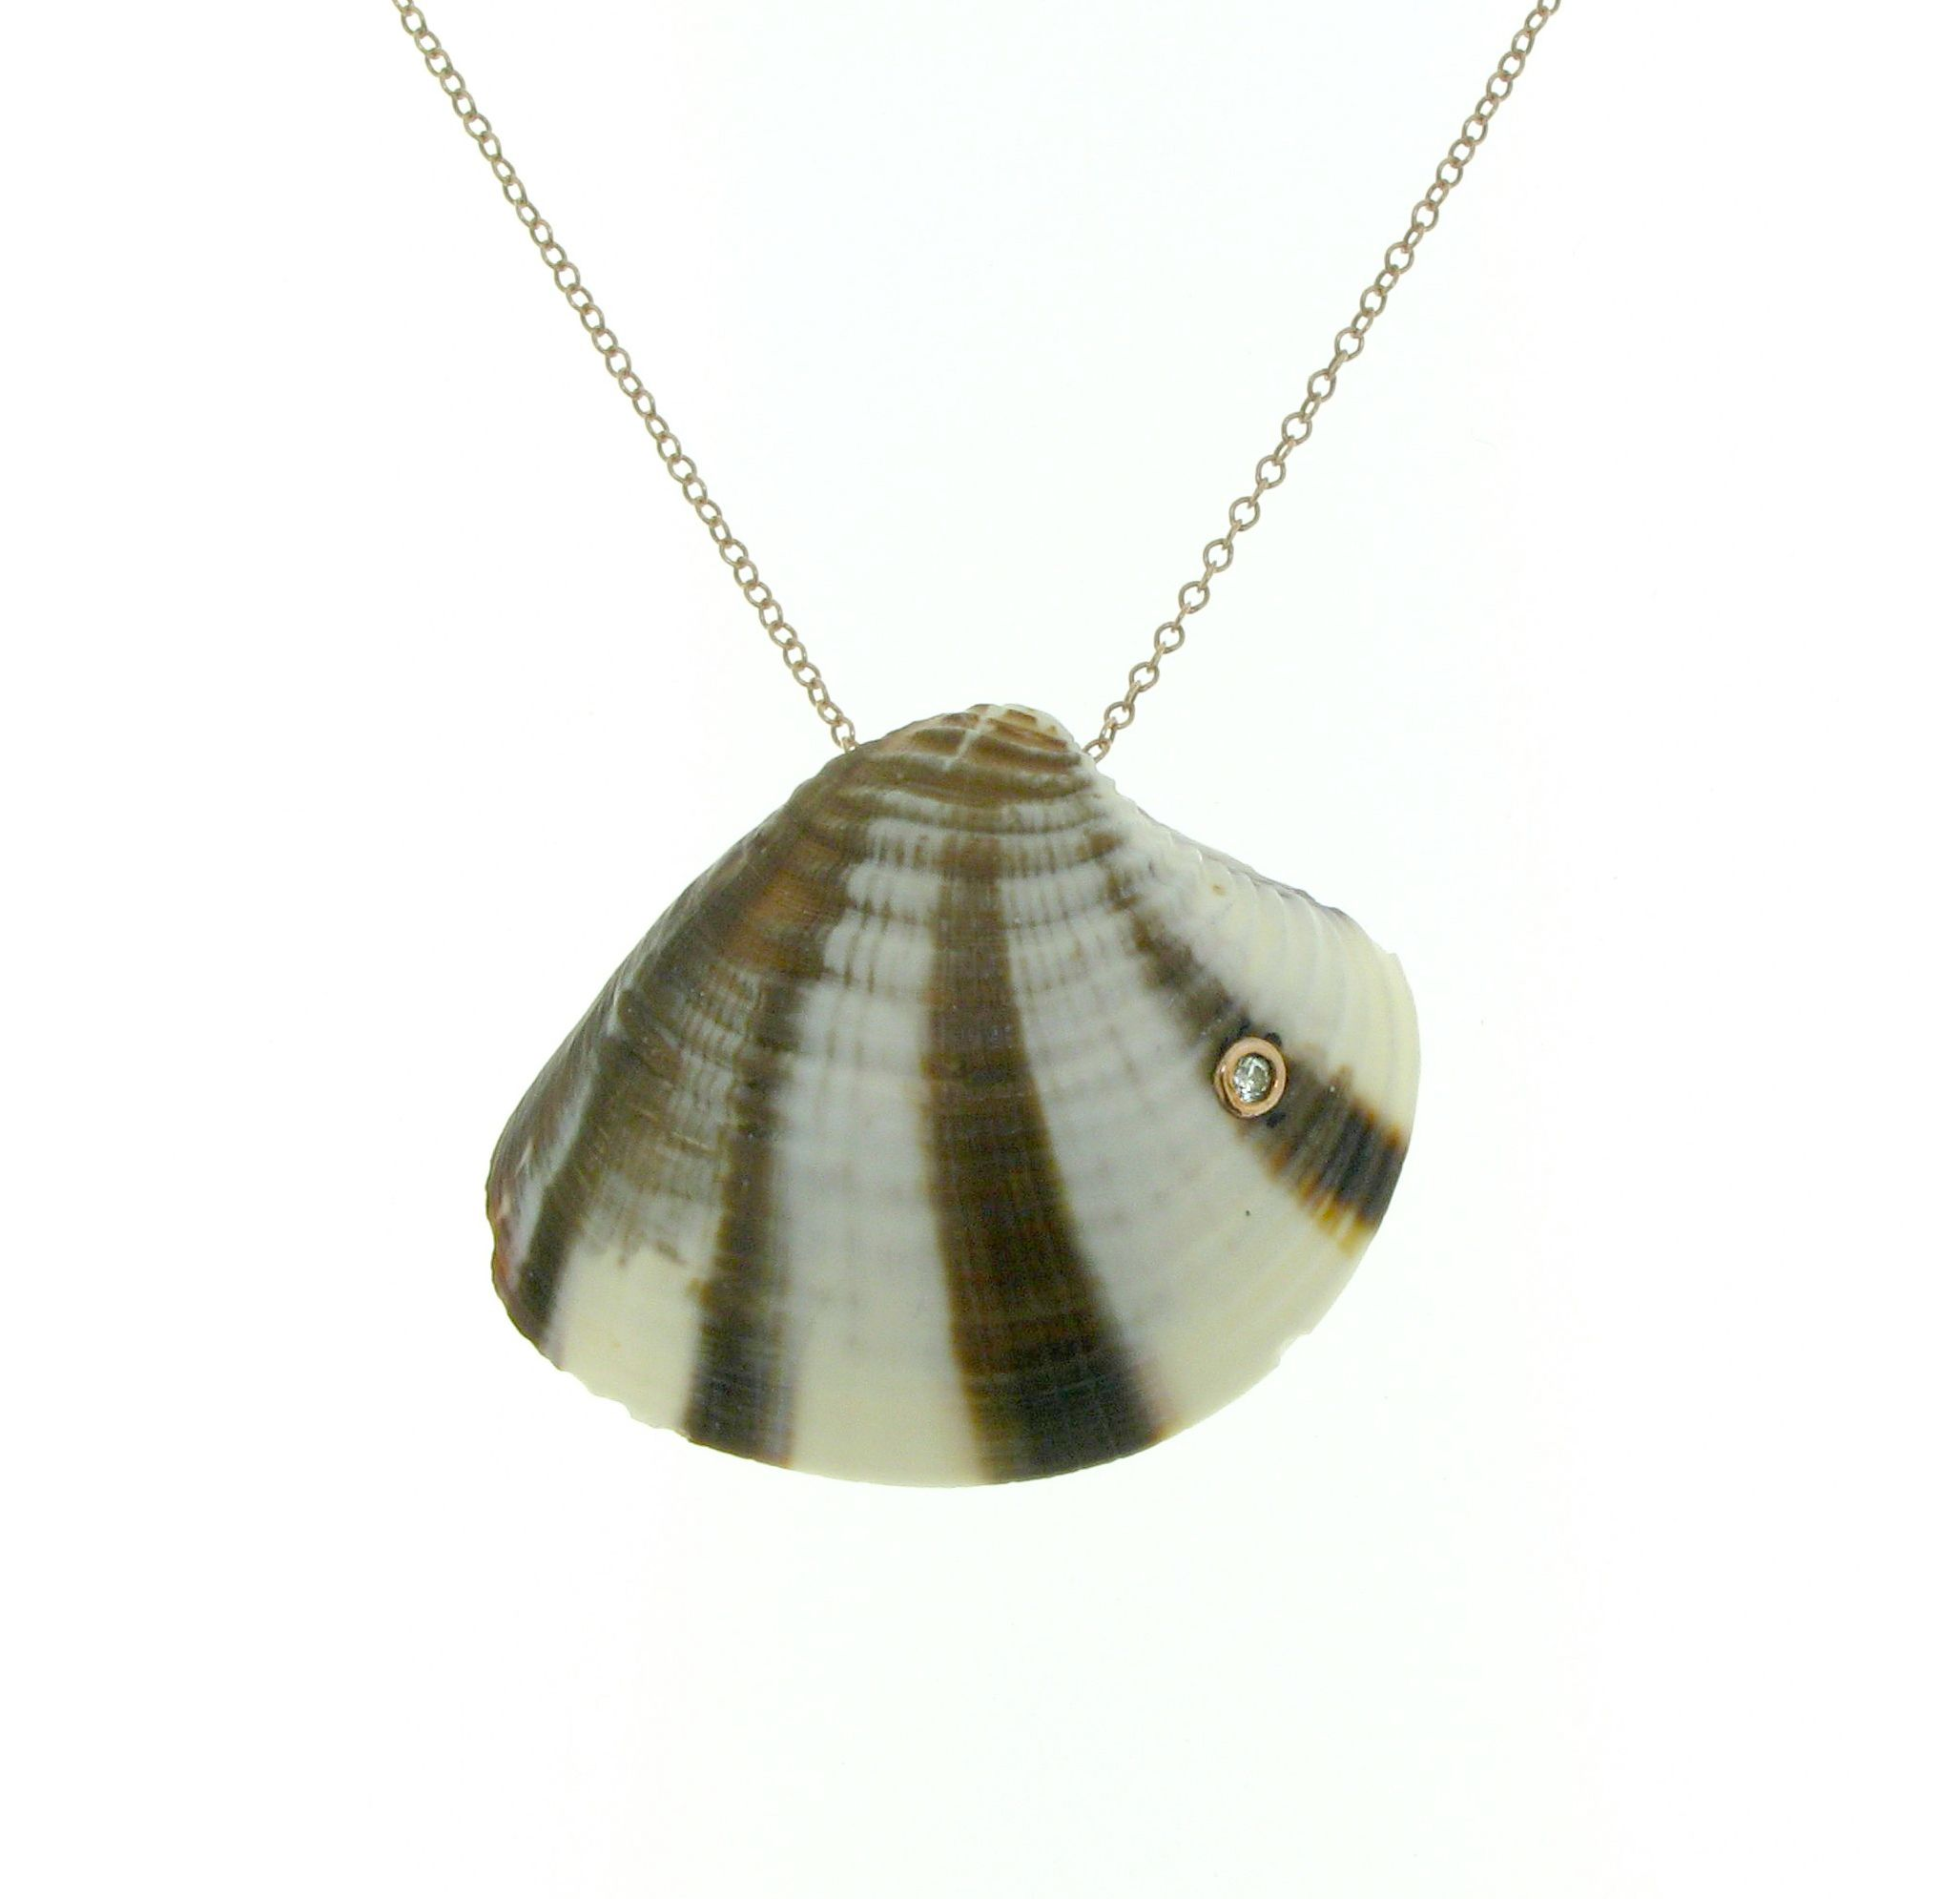 Sigal Gerber Jewelry shell necklace has a diamond set in 18k rose gold with a cultured pearl on the back of the shell, and a white gold chain. www.sigalgerber.com